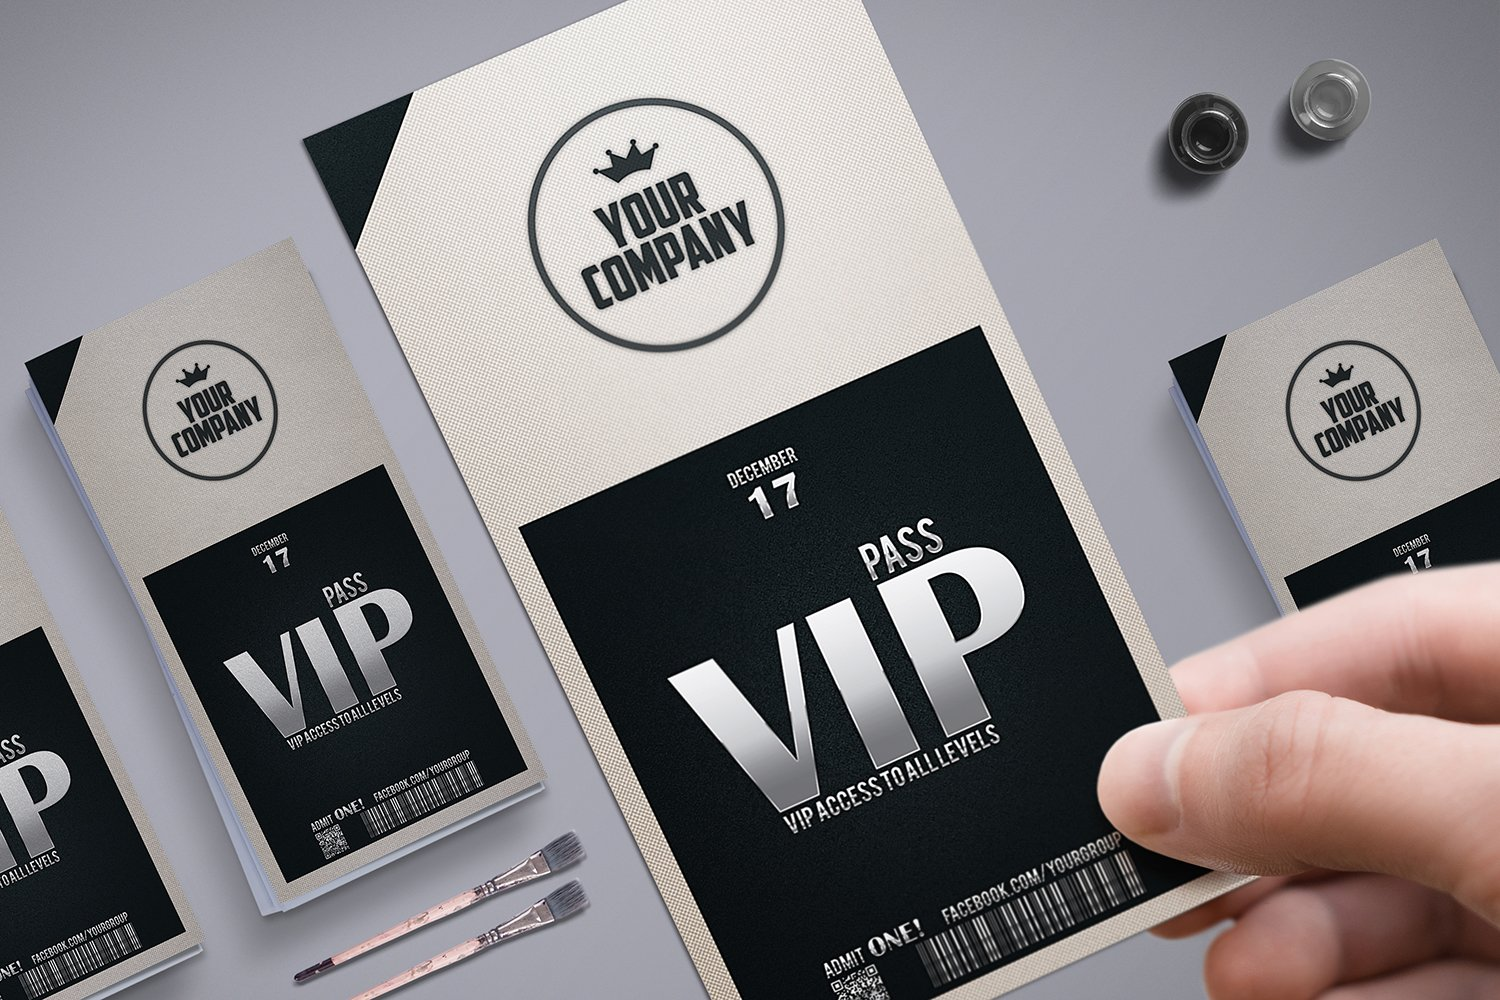 Vip Pass Stylish simple VIP PAS...